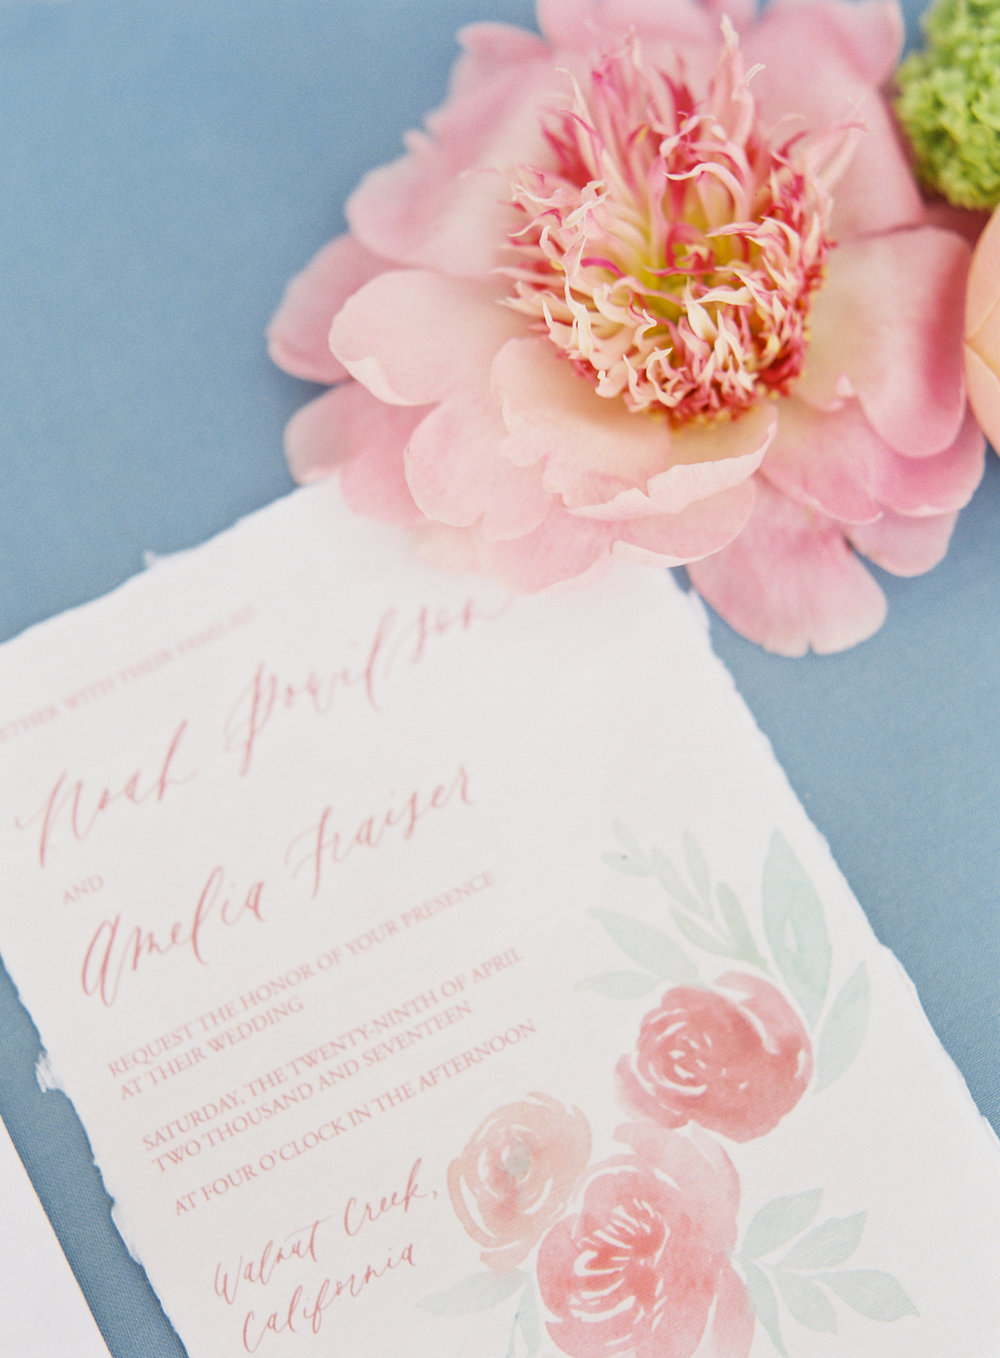 NathalieCheng_Monet_Styled_Shoot_Invitation_Details_012.jpg